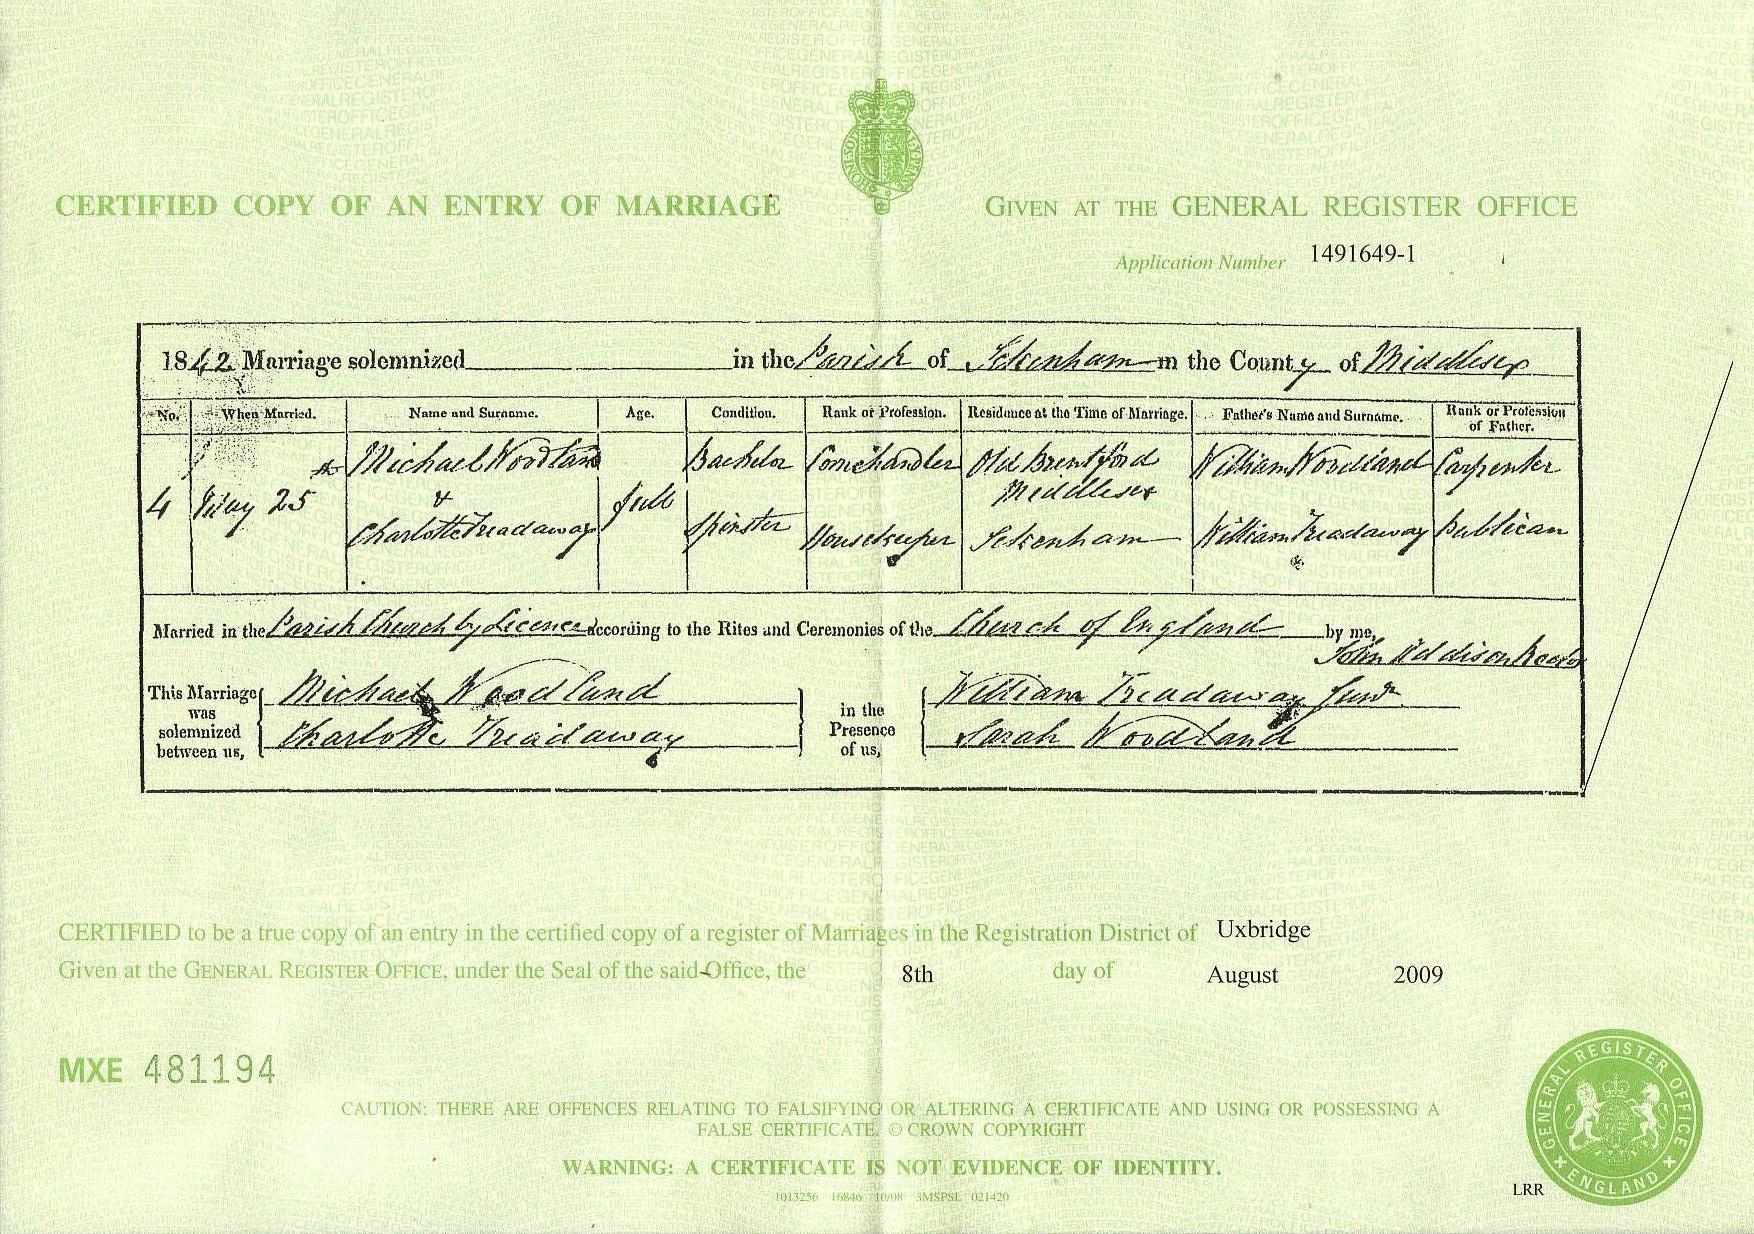 Marriage certificate for Michael Woodland and Charlotte Treadaway